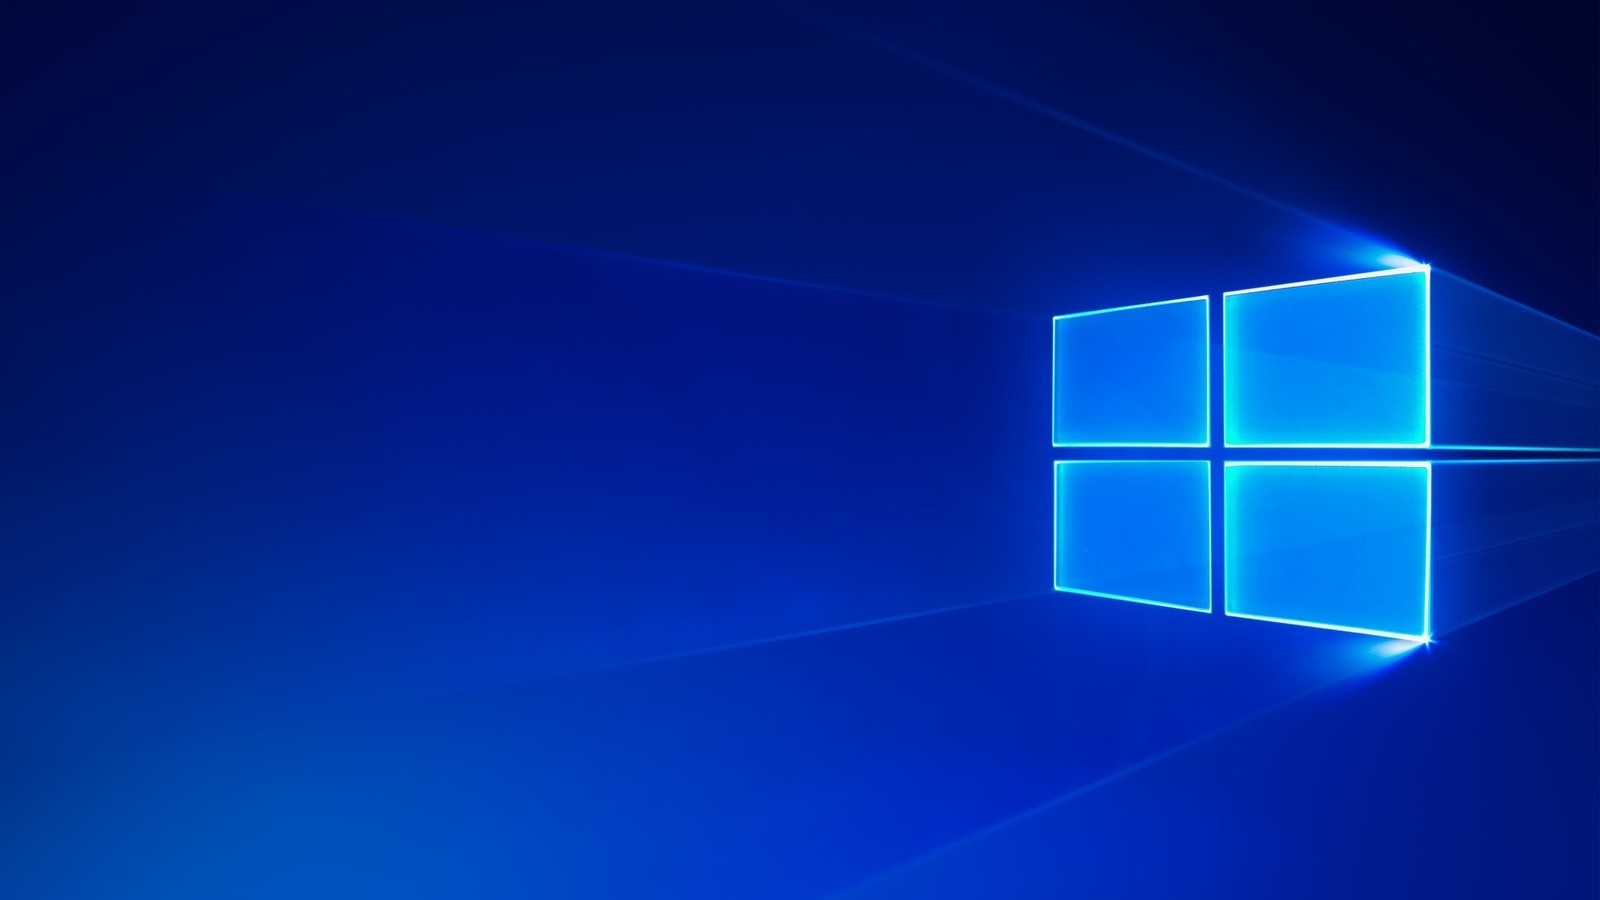 reparar el error de actualización de Windows 10 0x80242006